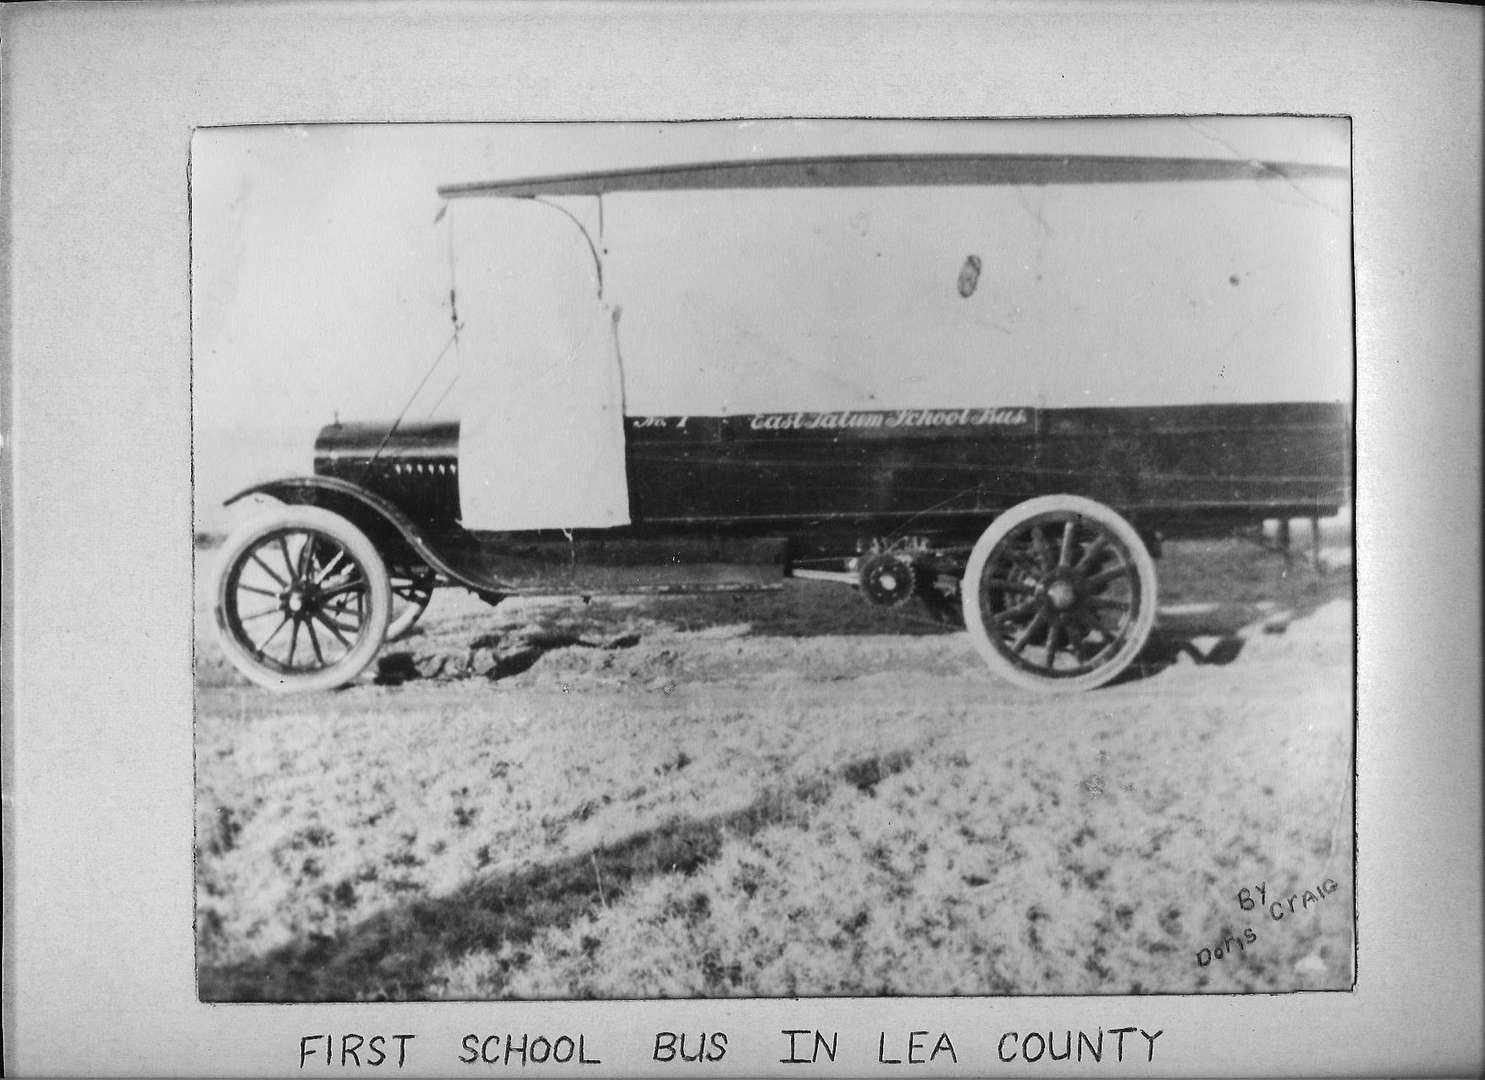 First School Bus in Lea County - East Tatum School Bus - No. 1